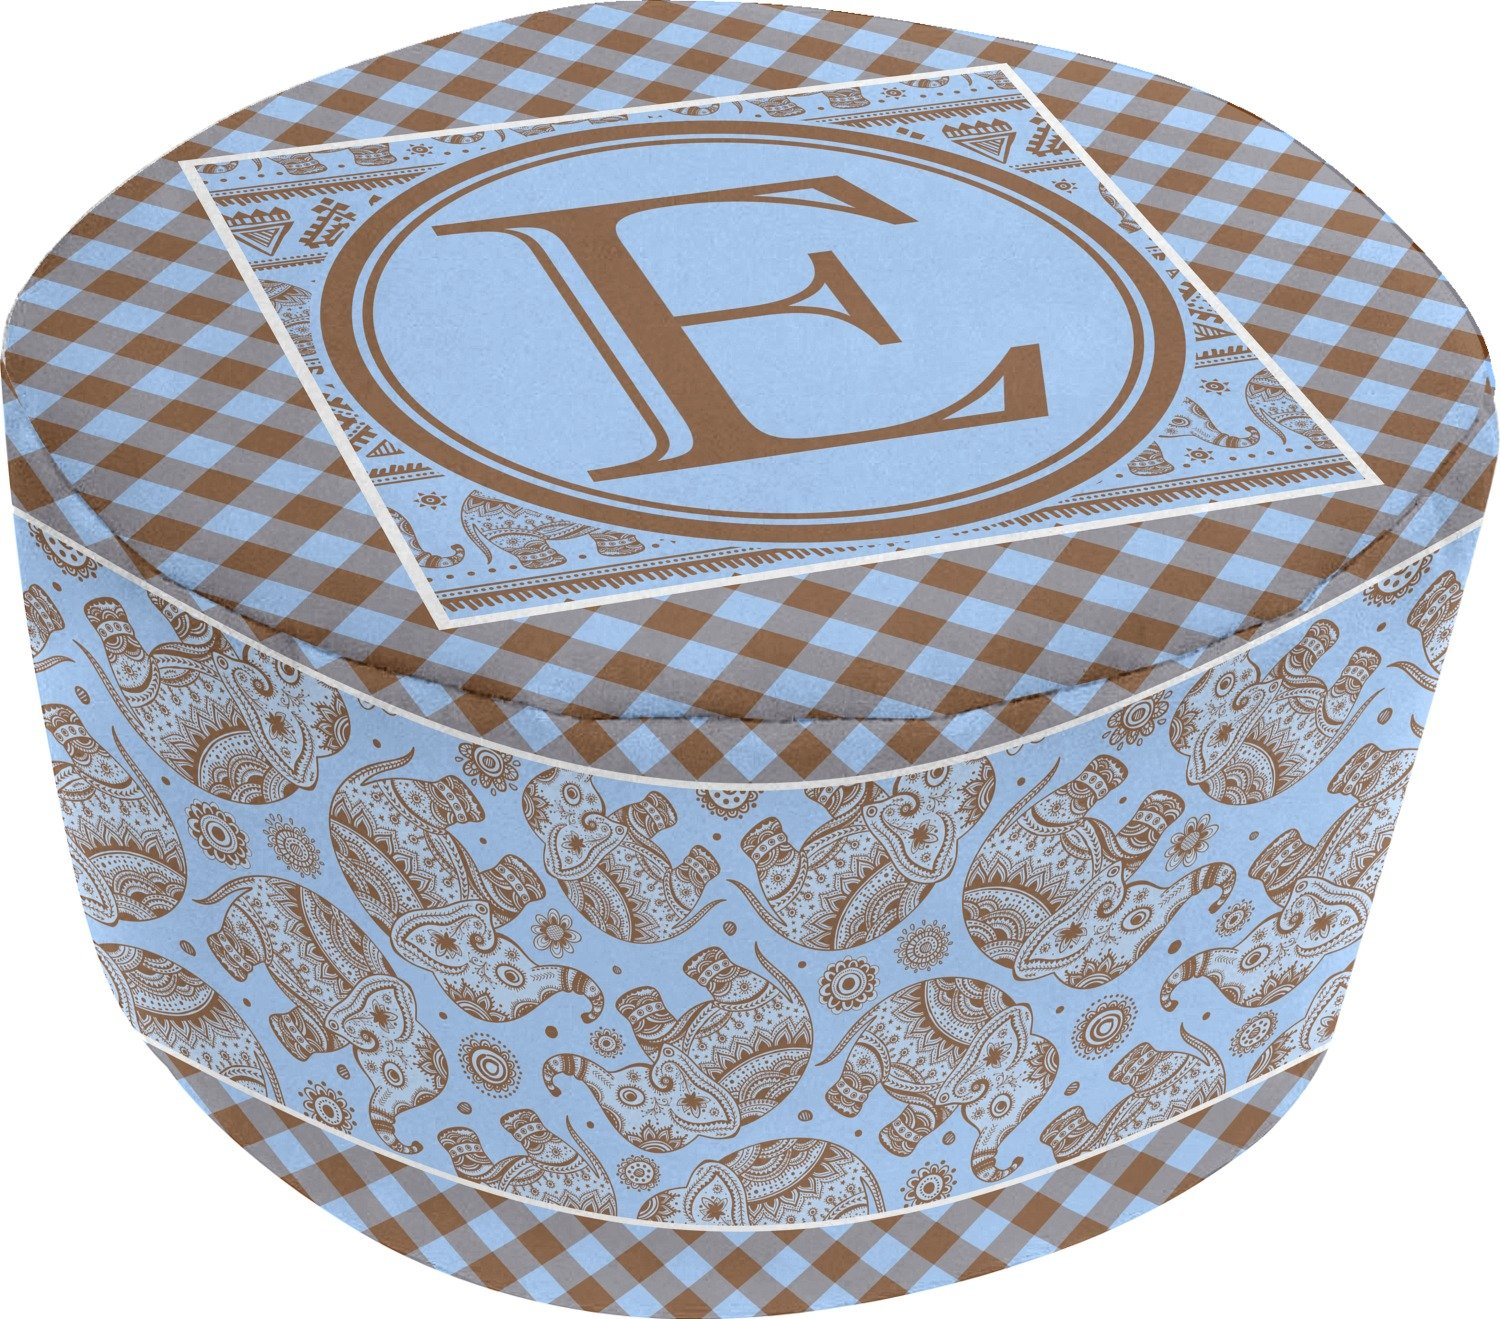 Gingham & Elephants Round Pouf Ottoman (Personalized) by RNK Shops (Image #2)